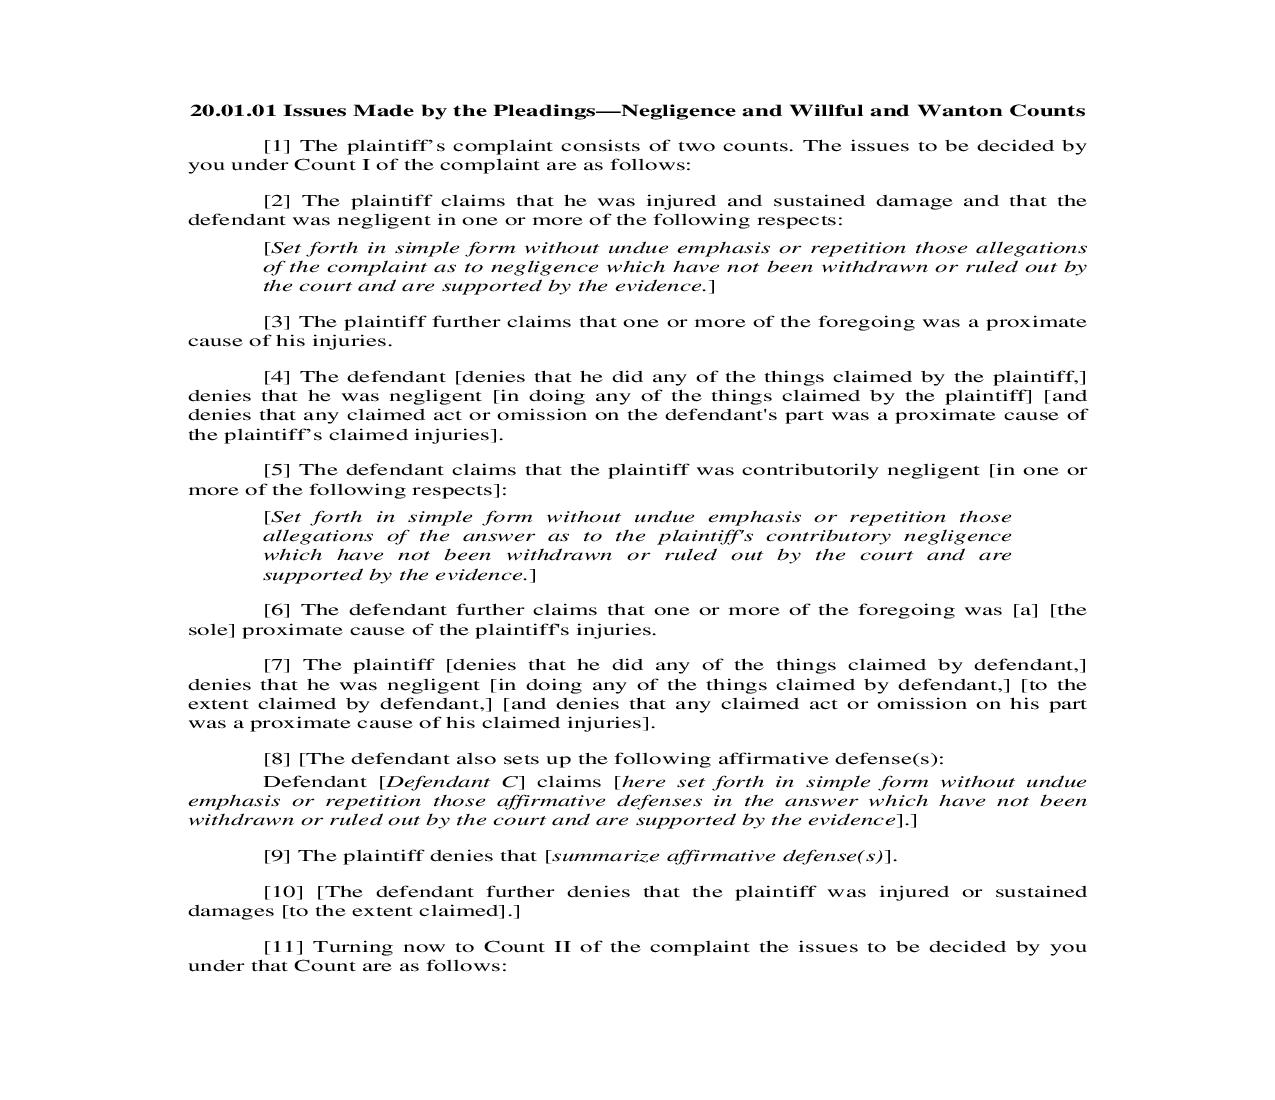 20.01.01. Issues Made By The Pleadings-Negligence and Willful and Wanton Counts | Pdf Doc Docx | Illinois_JI